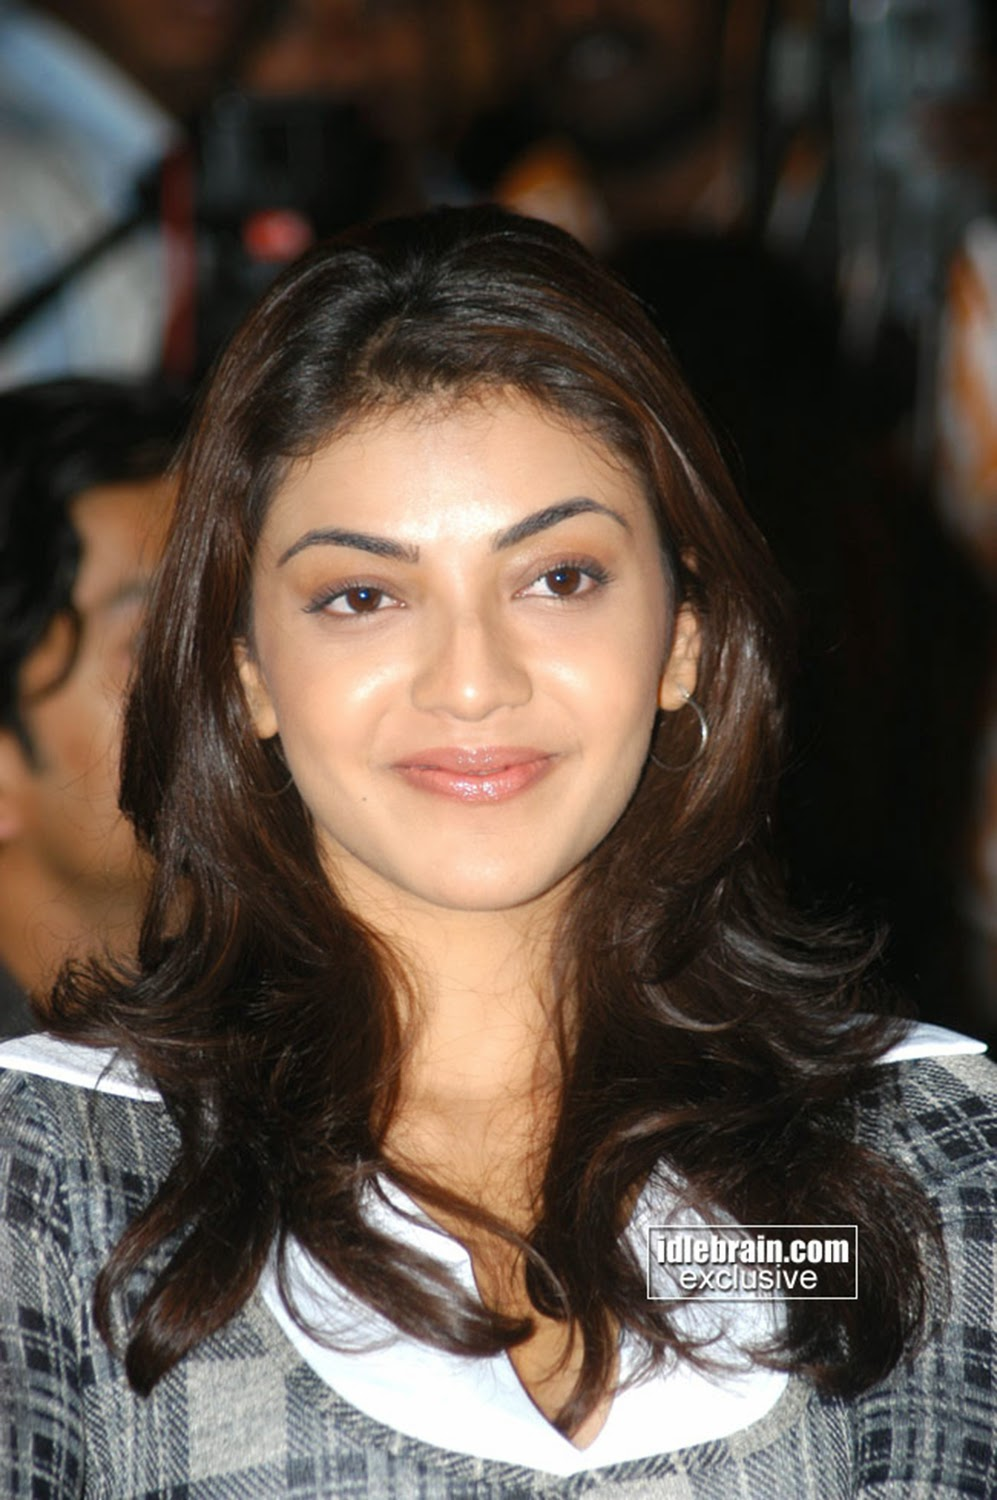 sumon4all: kajal aggarwal